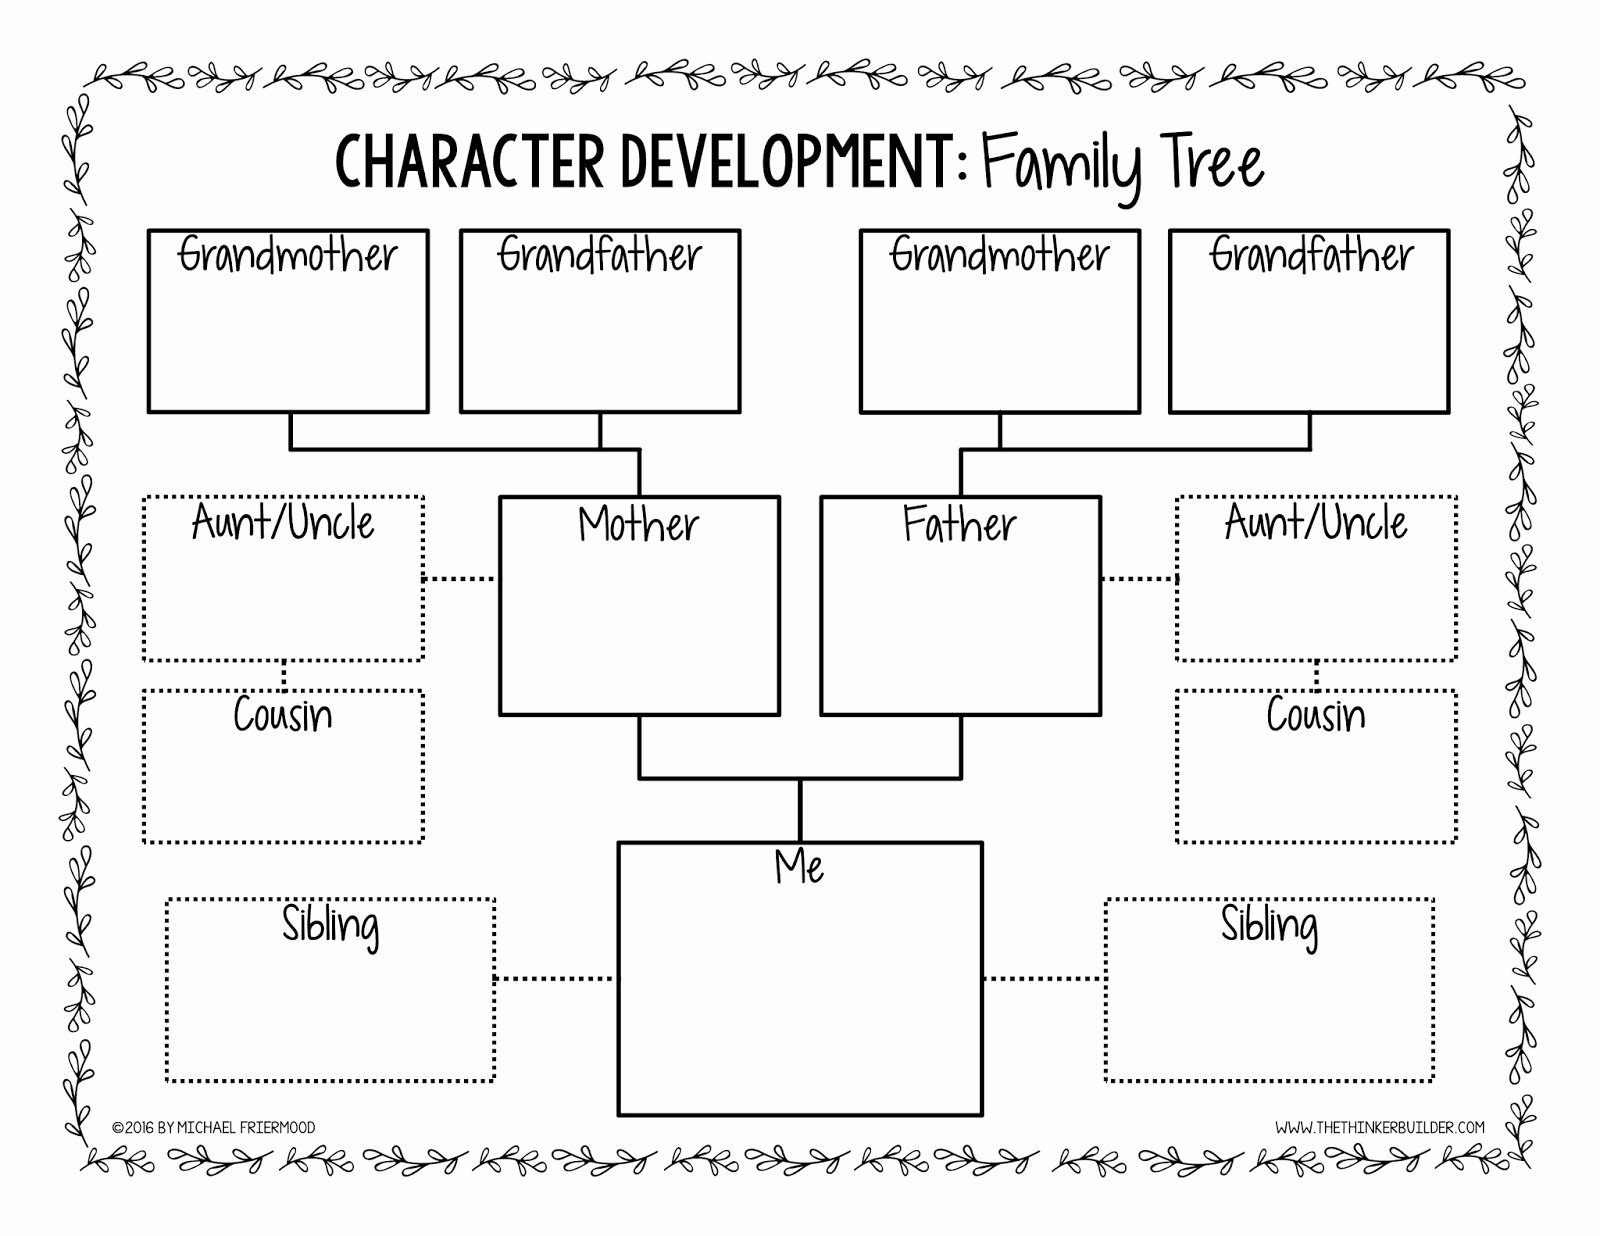 Family Tree Template with Siblings Beautiful Developing A Character for Fictional Narrative Writing